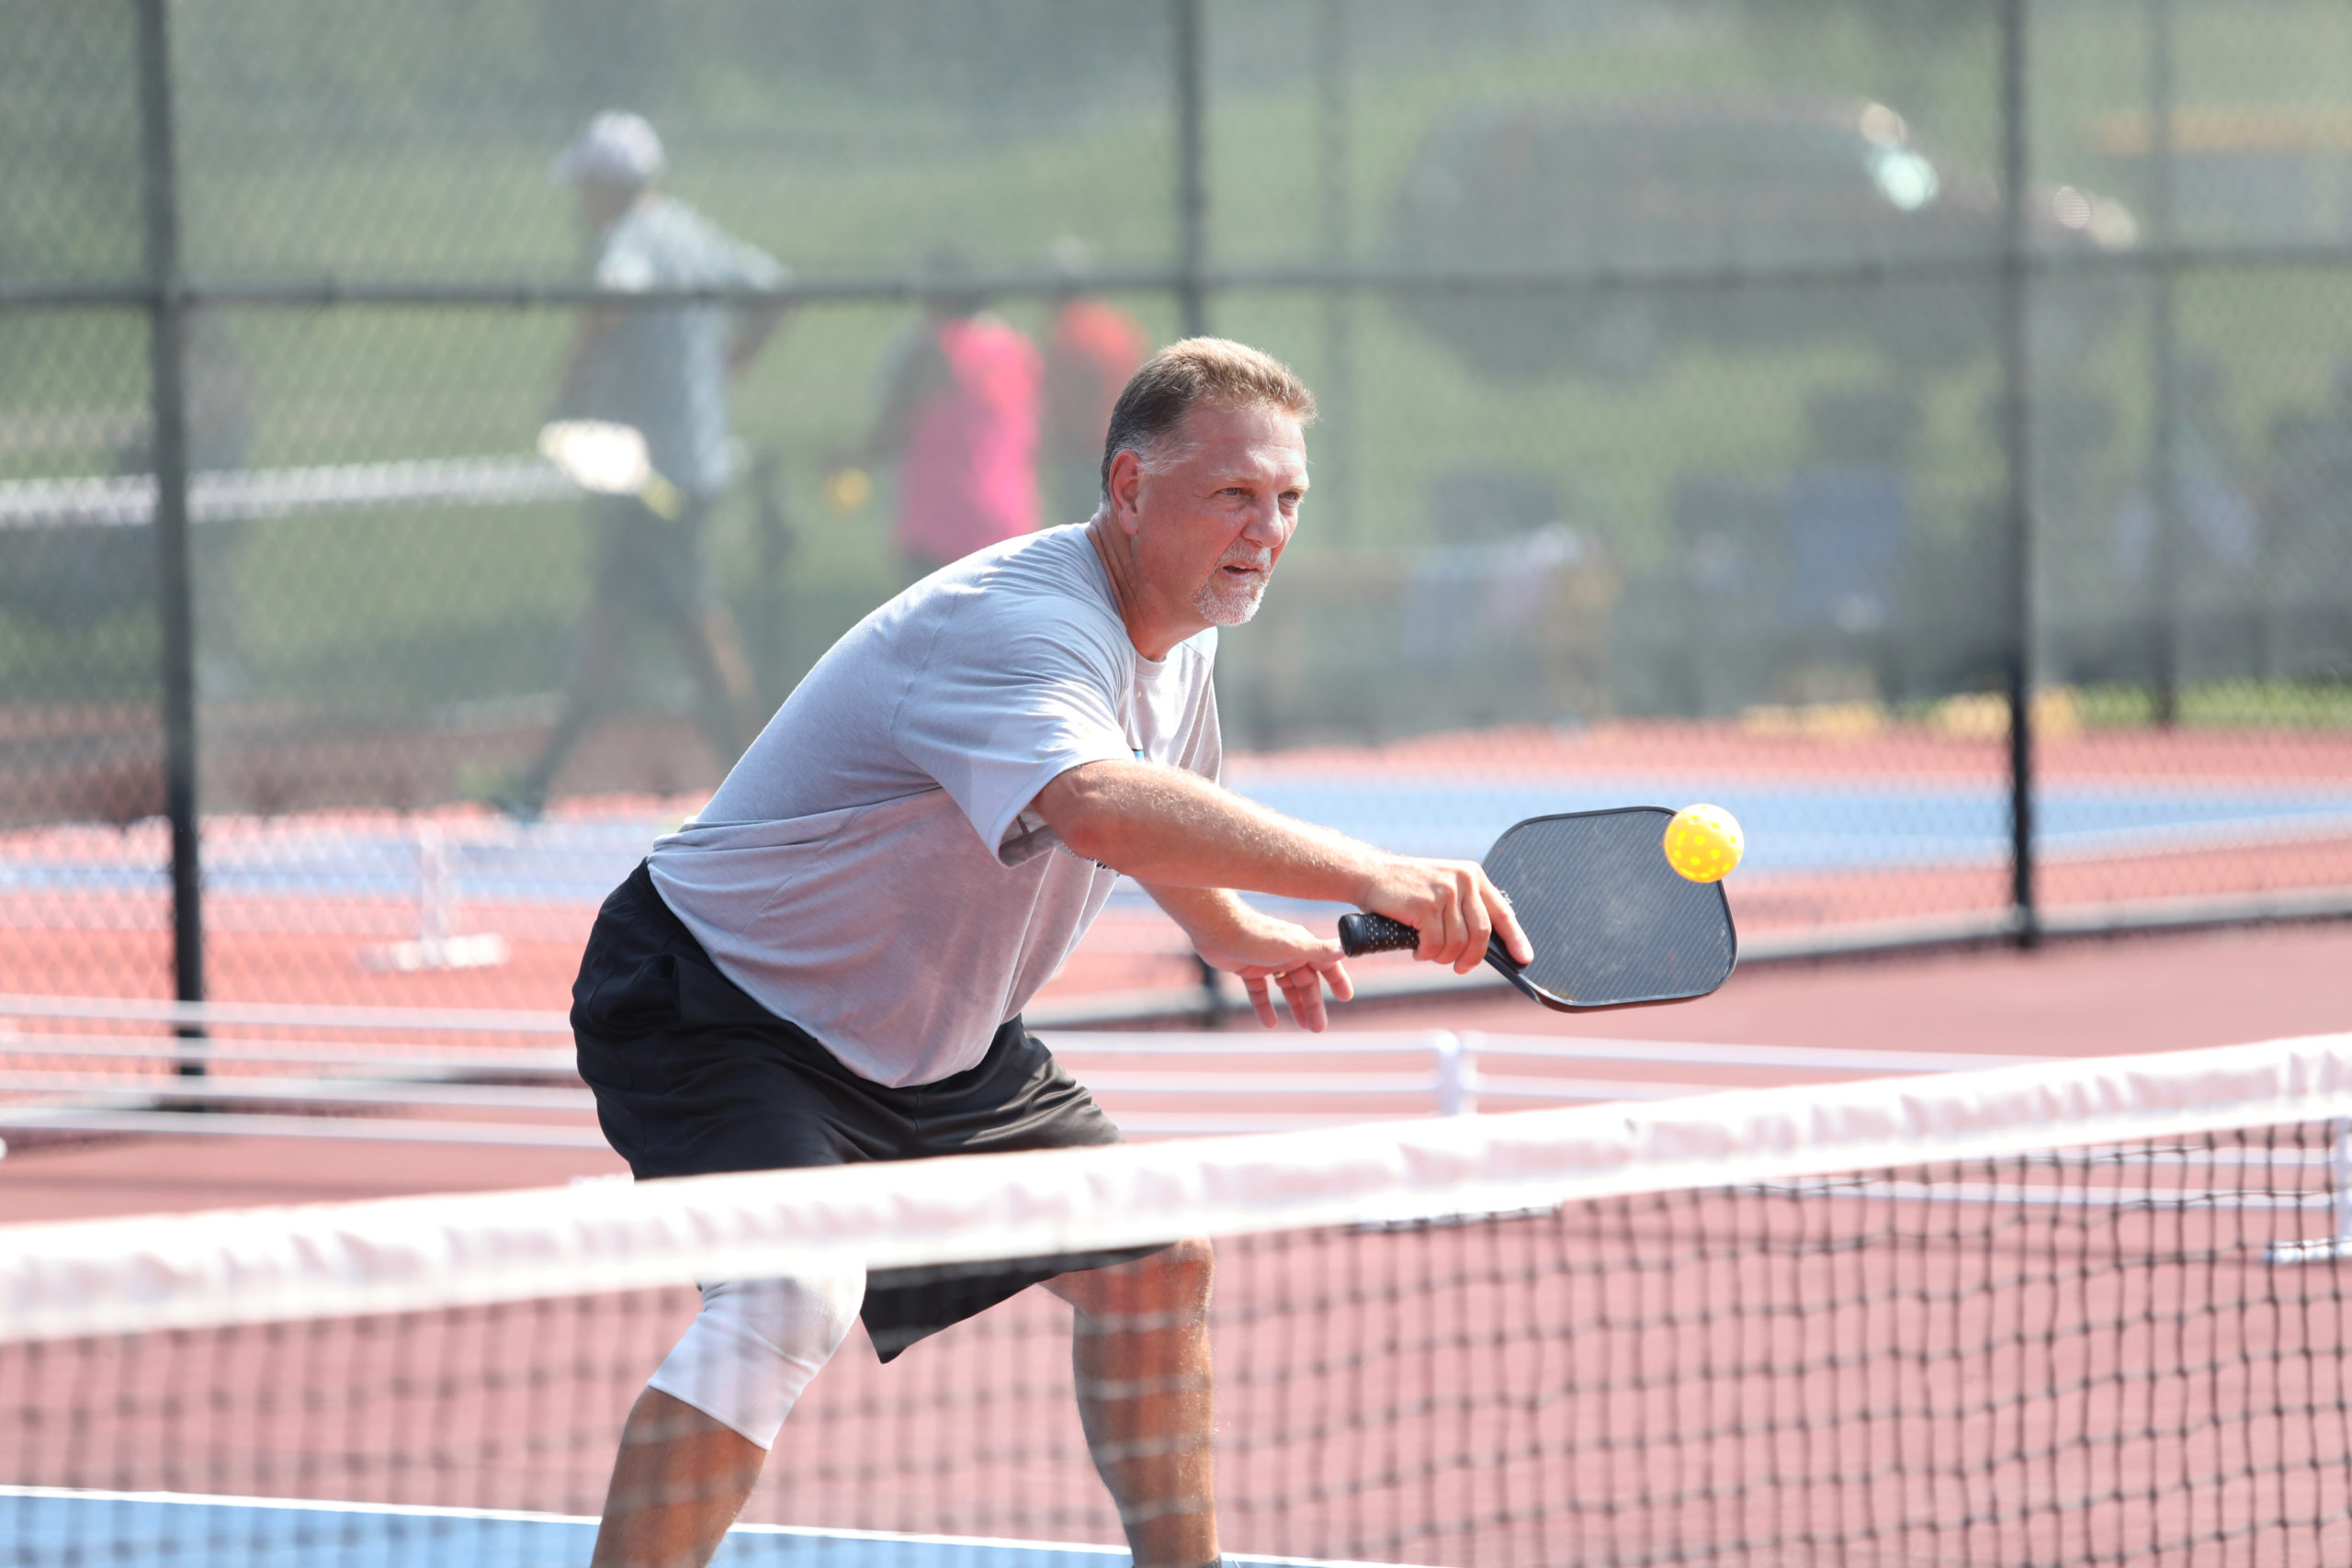 pickleball tournament shot